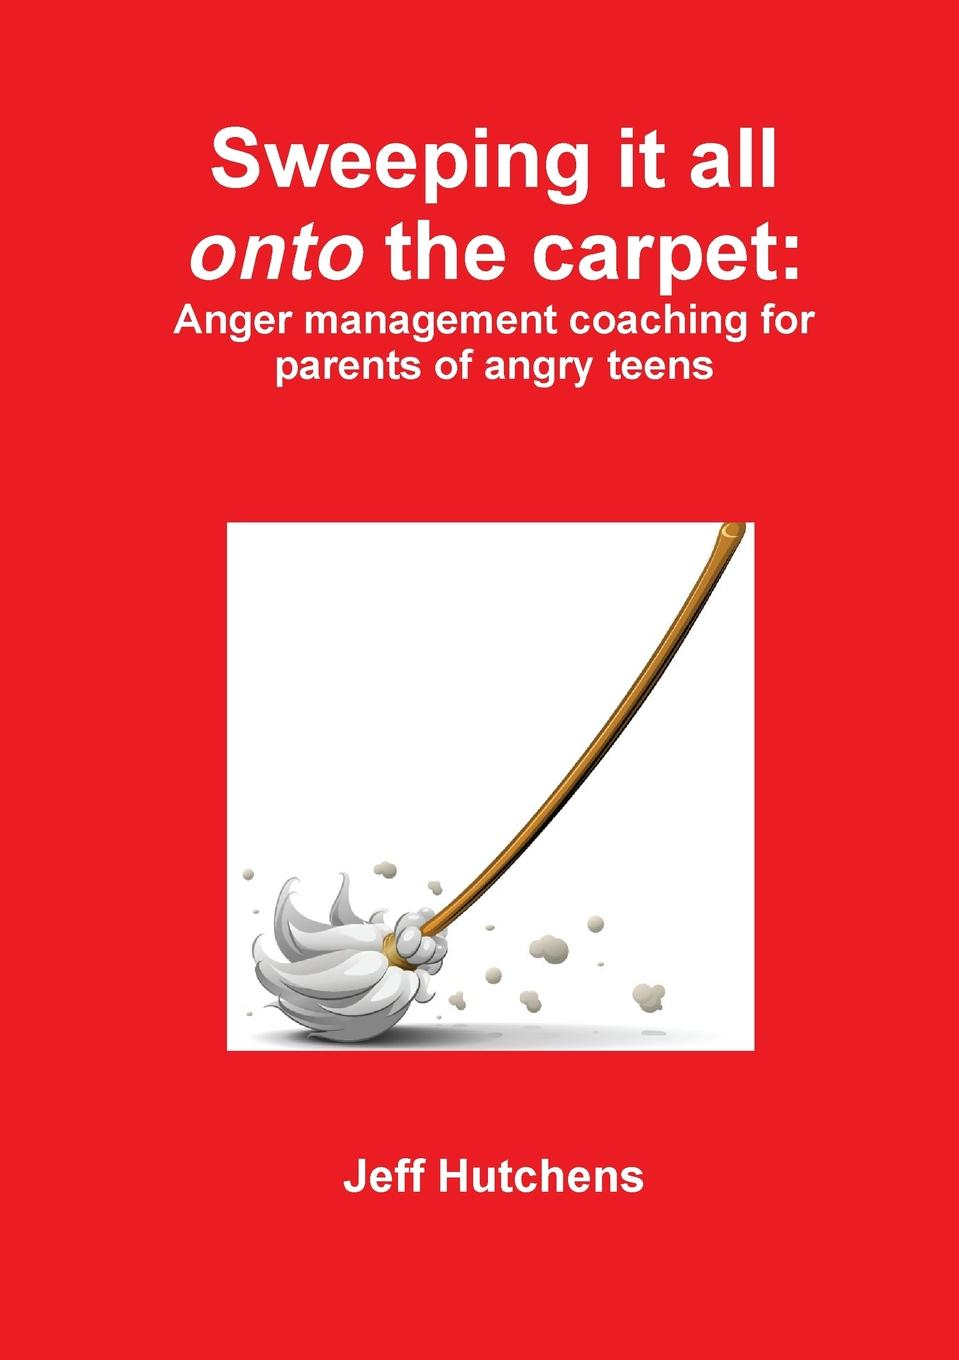 Jeff Hutchens Sweeping it all onto the carpet anger reissue